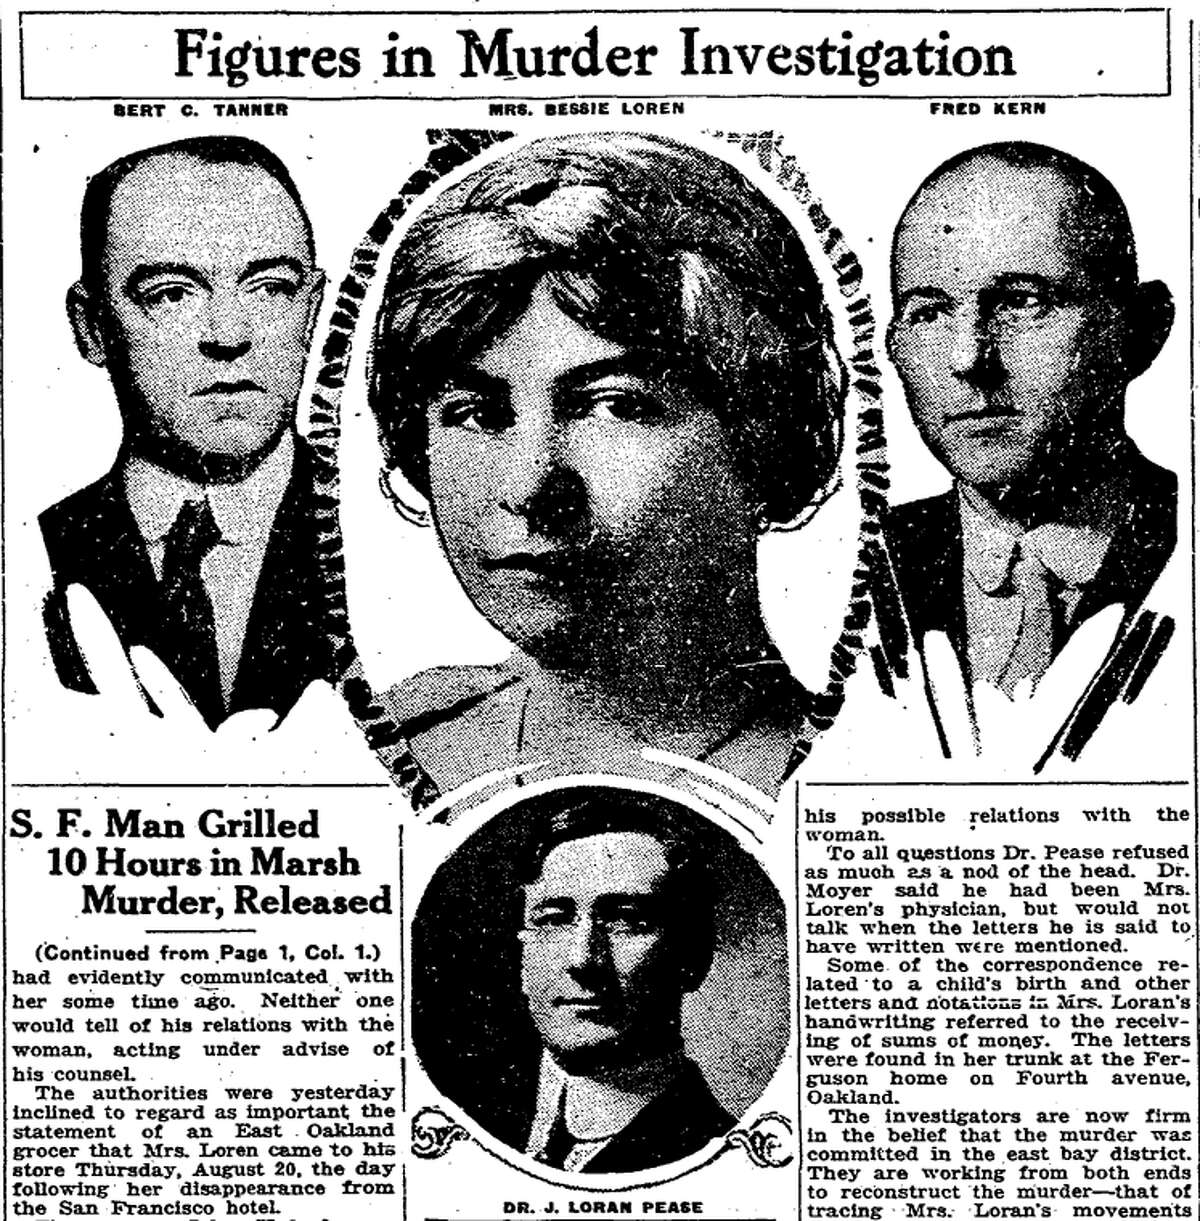 A Chronicle photo illustration showing some players in the Bessie Ferguson case. To left and right of Ferguson are two hotel workers who saw her before her death. Below is Dr. J. Loran Pease, who was allegedly having an affair with her.